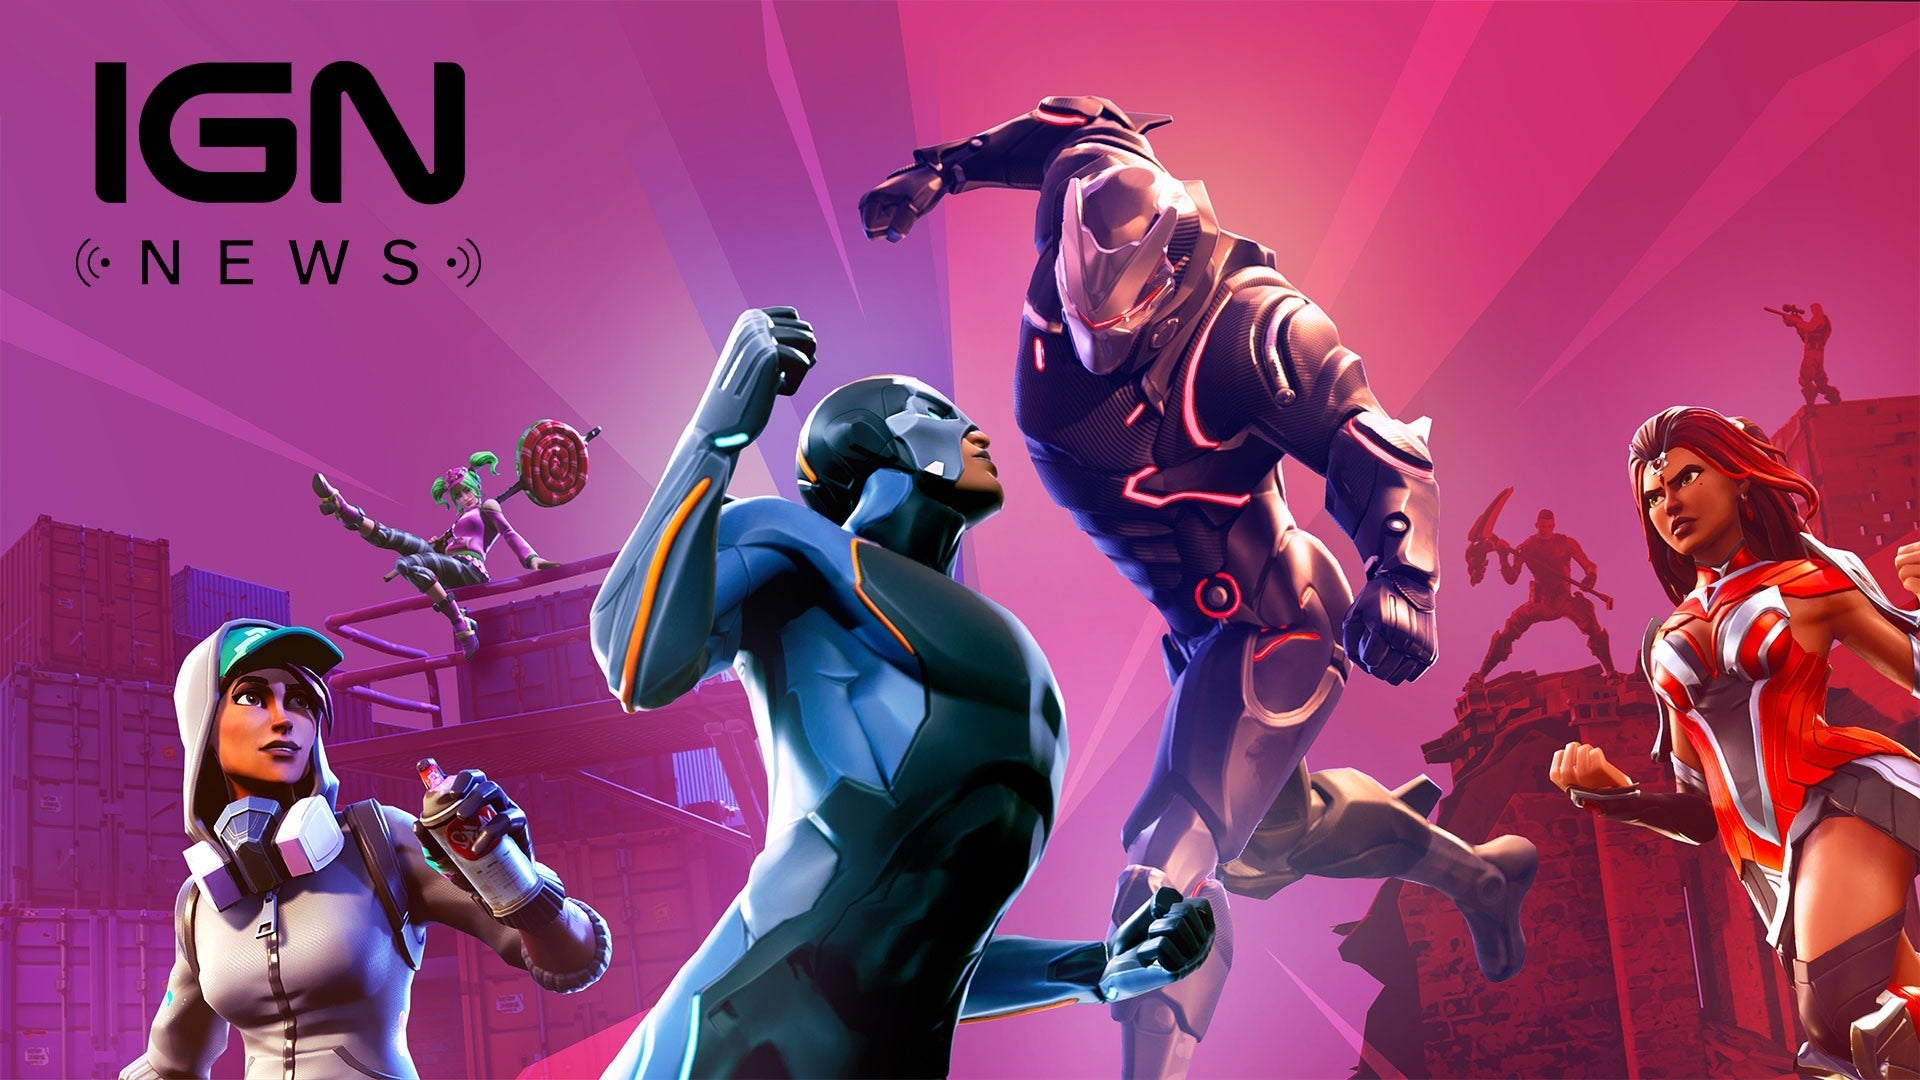 Fortnite Leak Potentially Reveals First Look at Season 5 Battle Pass     Fortnite Leak Potentially Reveals First Look at Season 5 Battle Pass   IGN